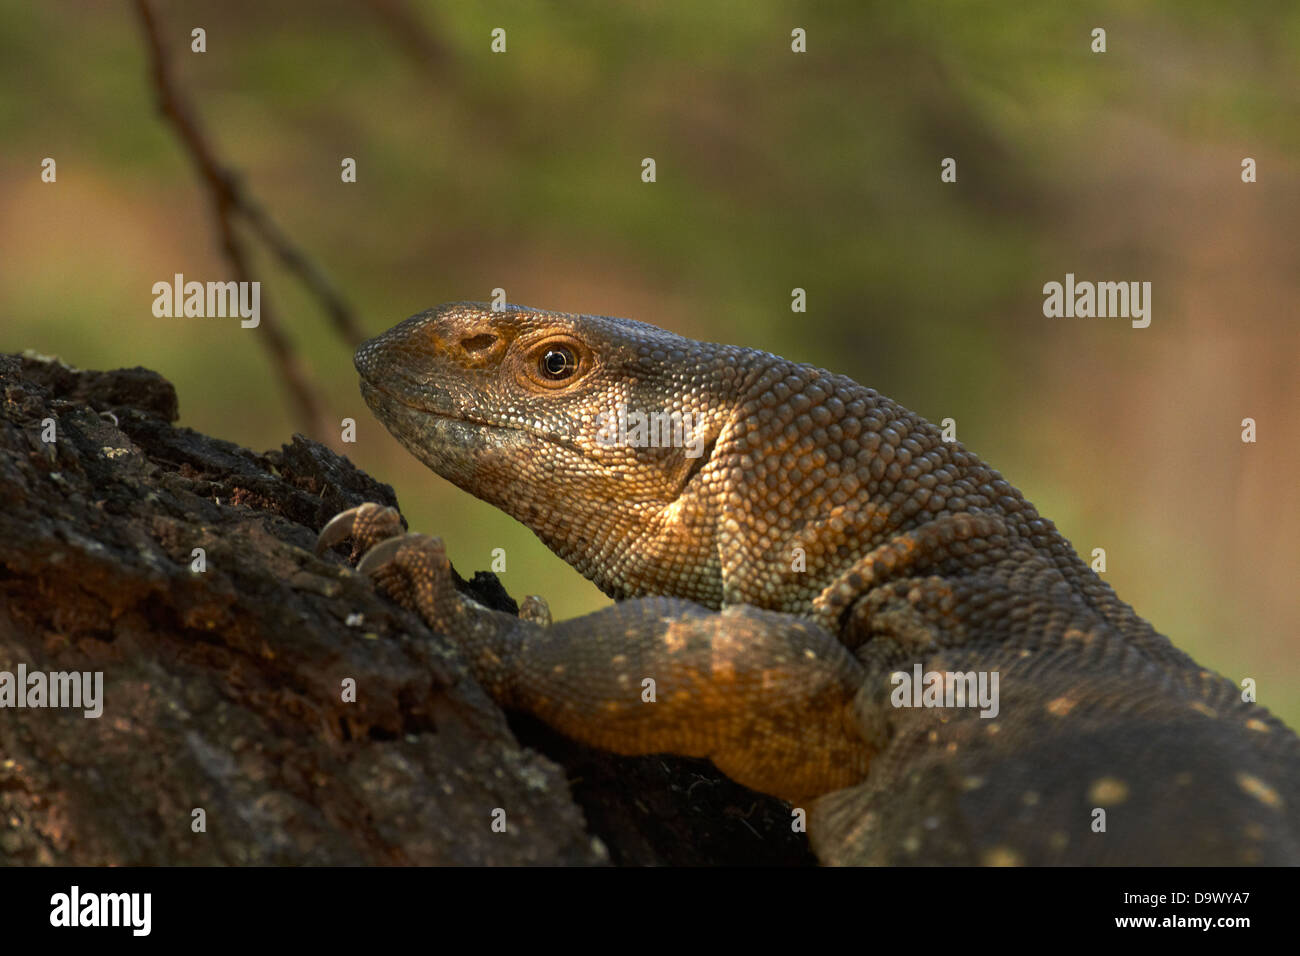 White-throated monitor (Varanus albigularis albigularis), el Parque Nacional Kruger, Sudáfrica Imagen De Stock